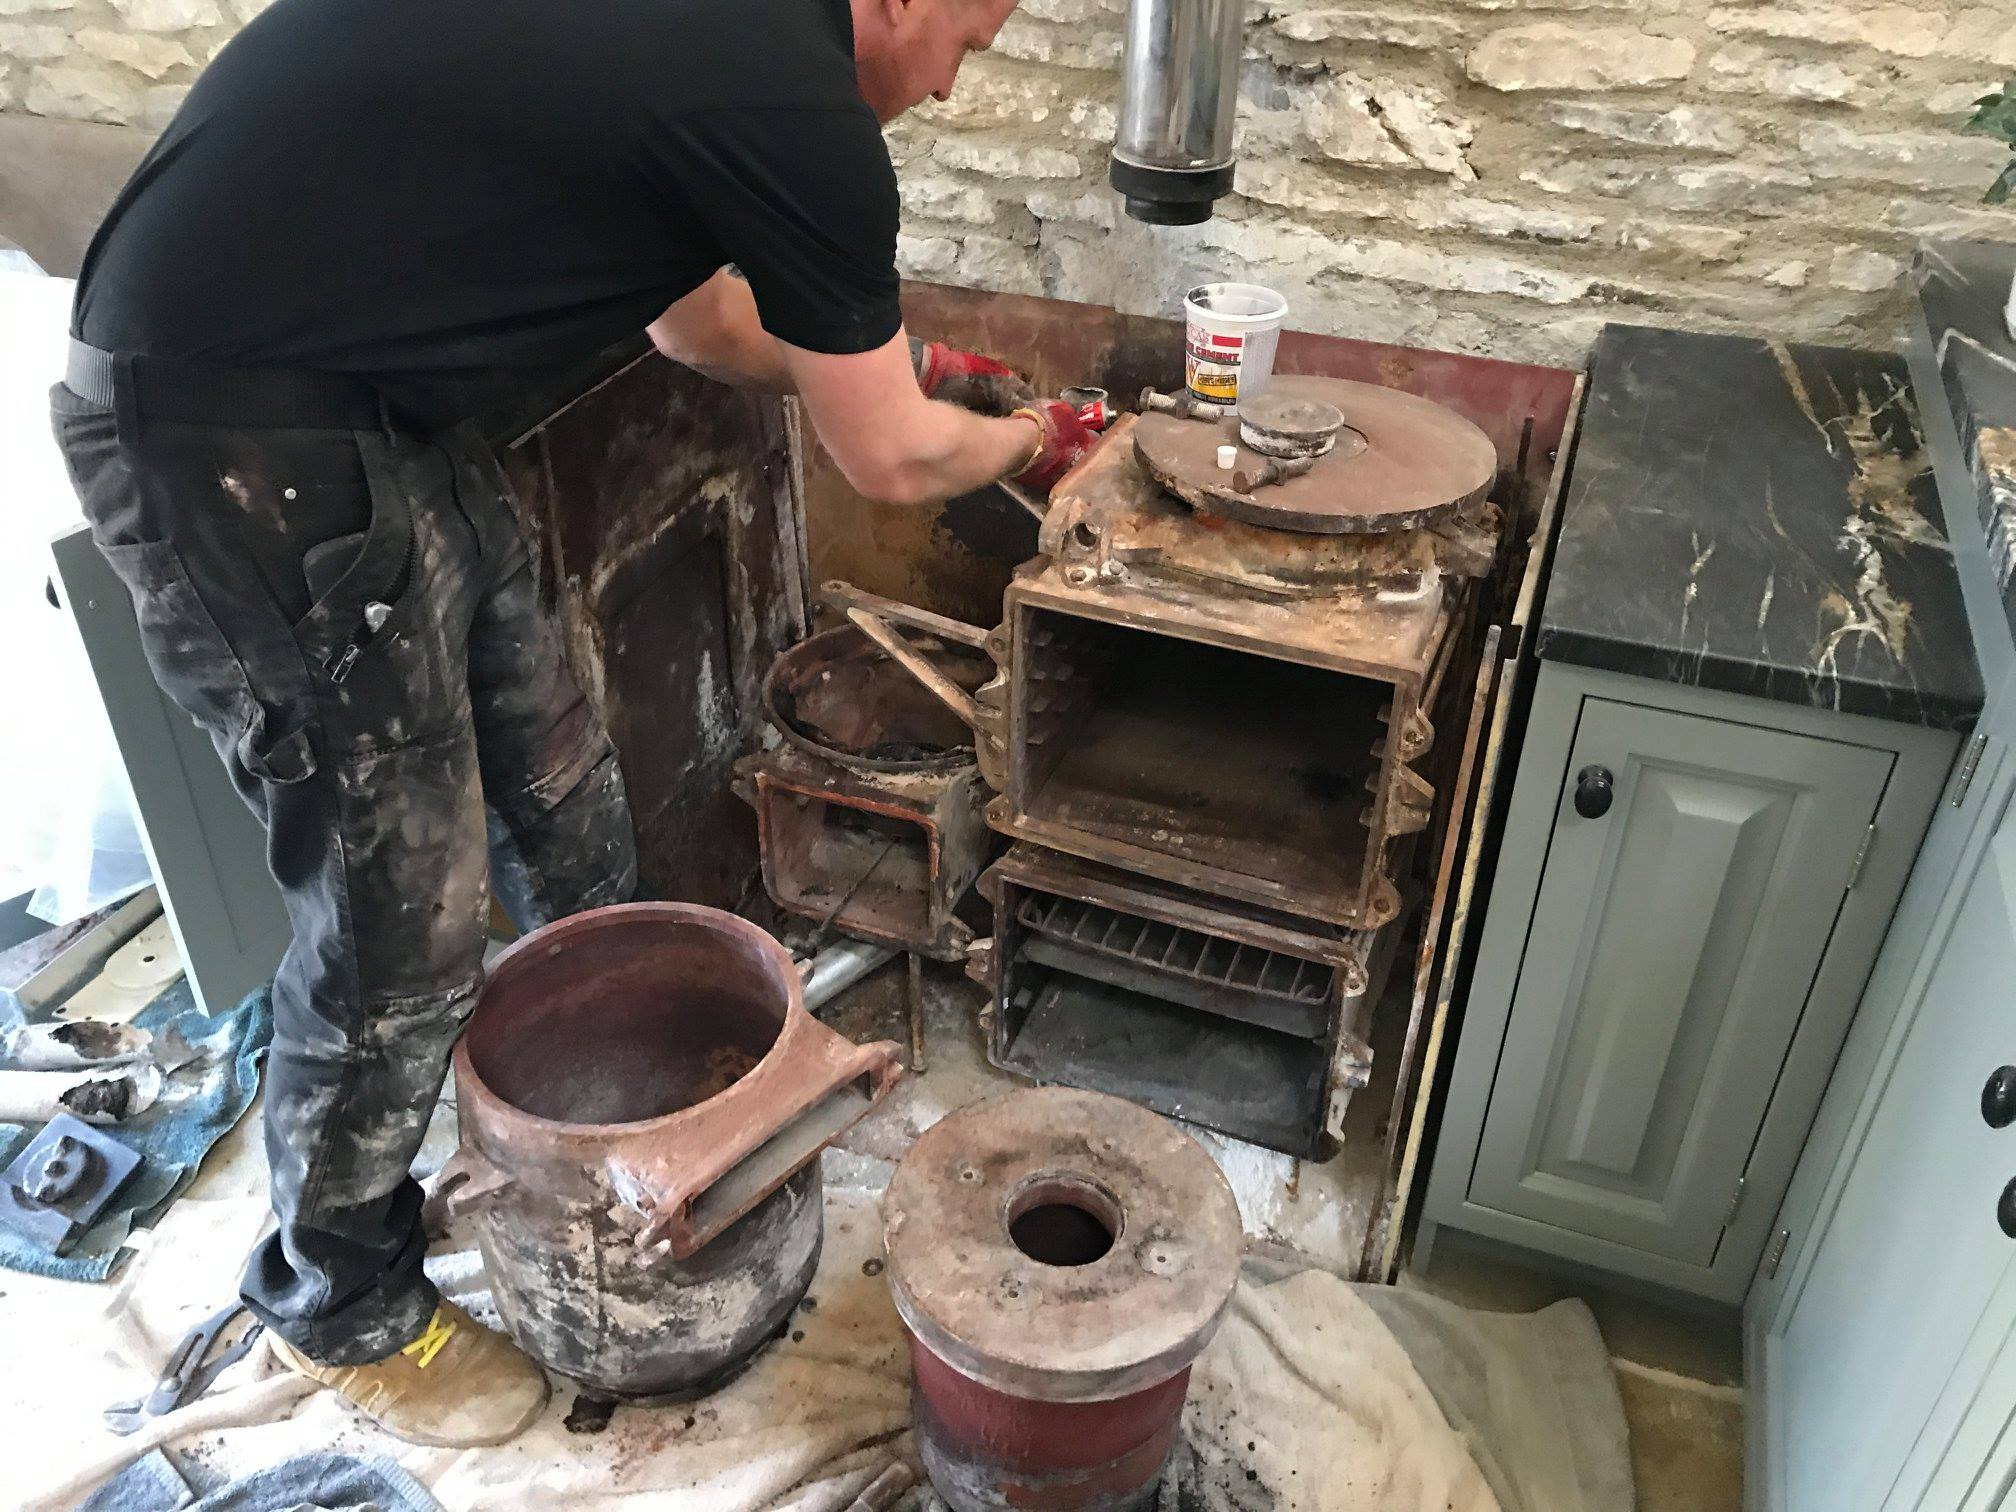 Dismantled Aga range cooker with engineer working on it